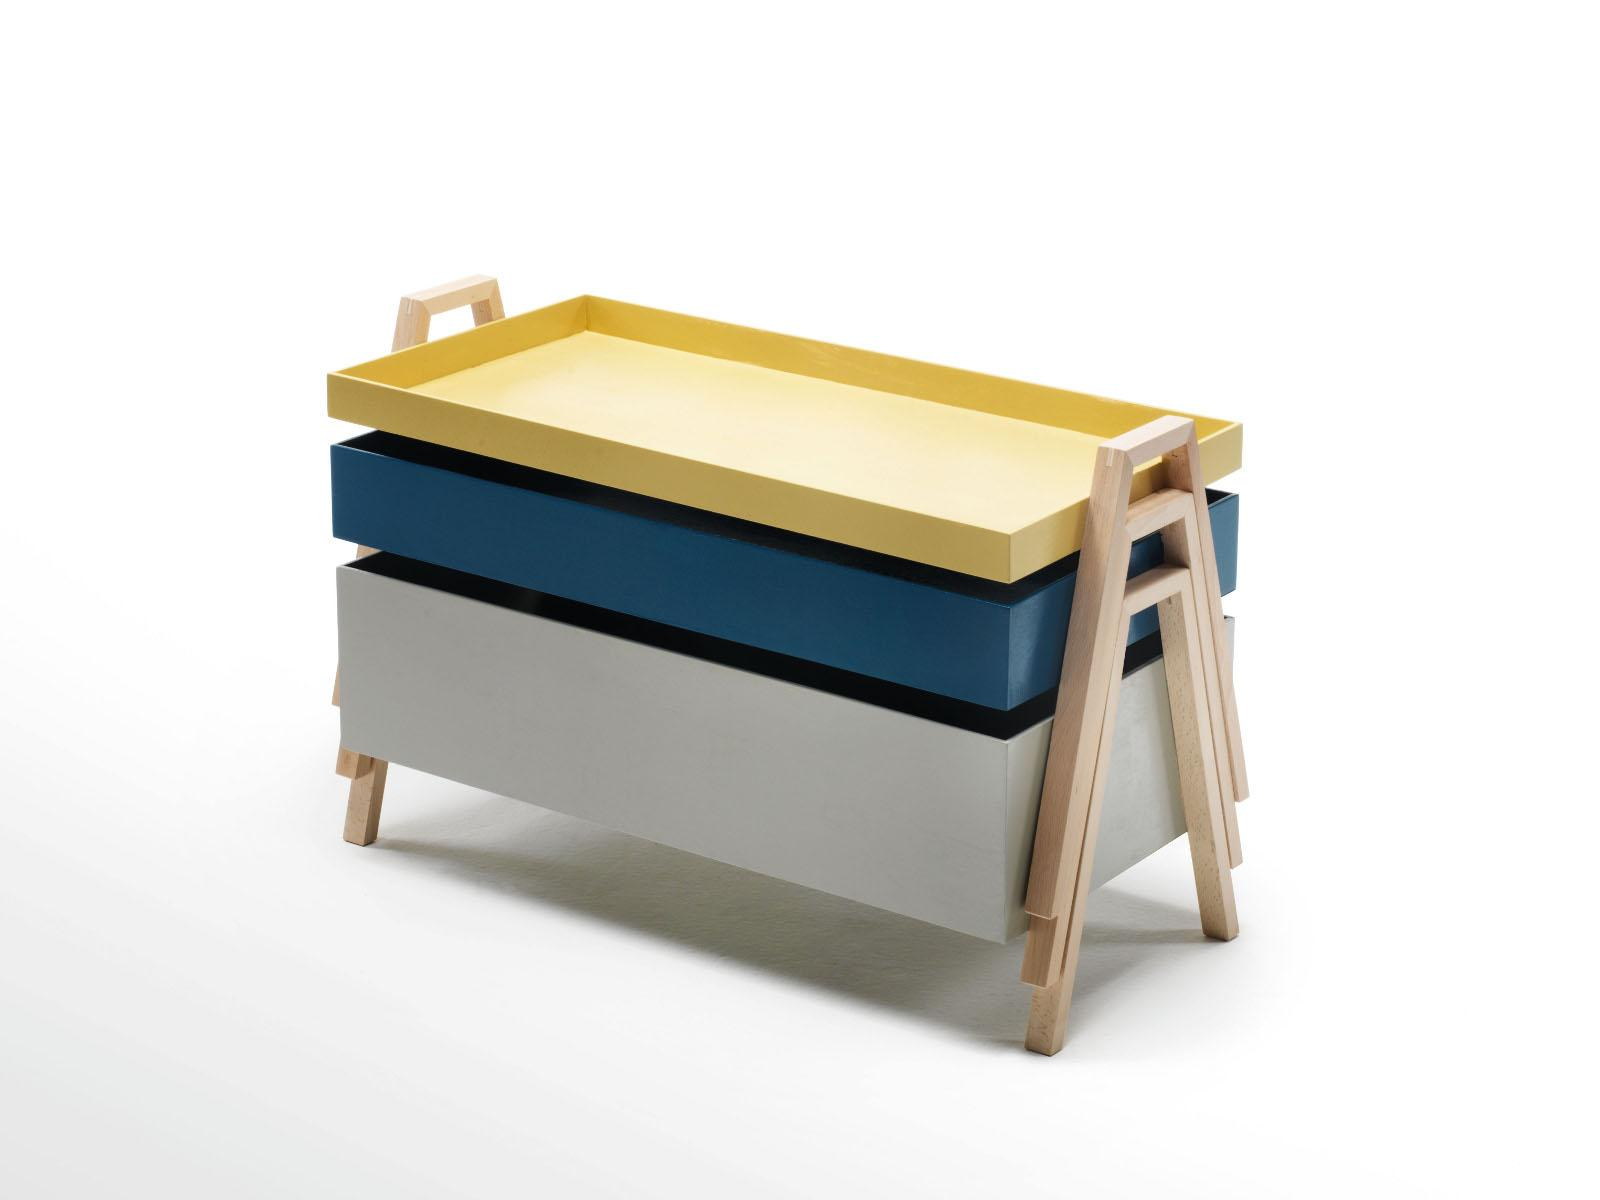 STACKABLE WOODEN COFFEE TABLE STACK TABLE BY LIVING DIVANI | DESIGN NATHAN YONG